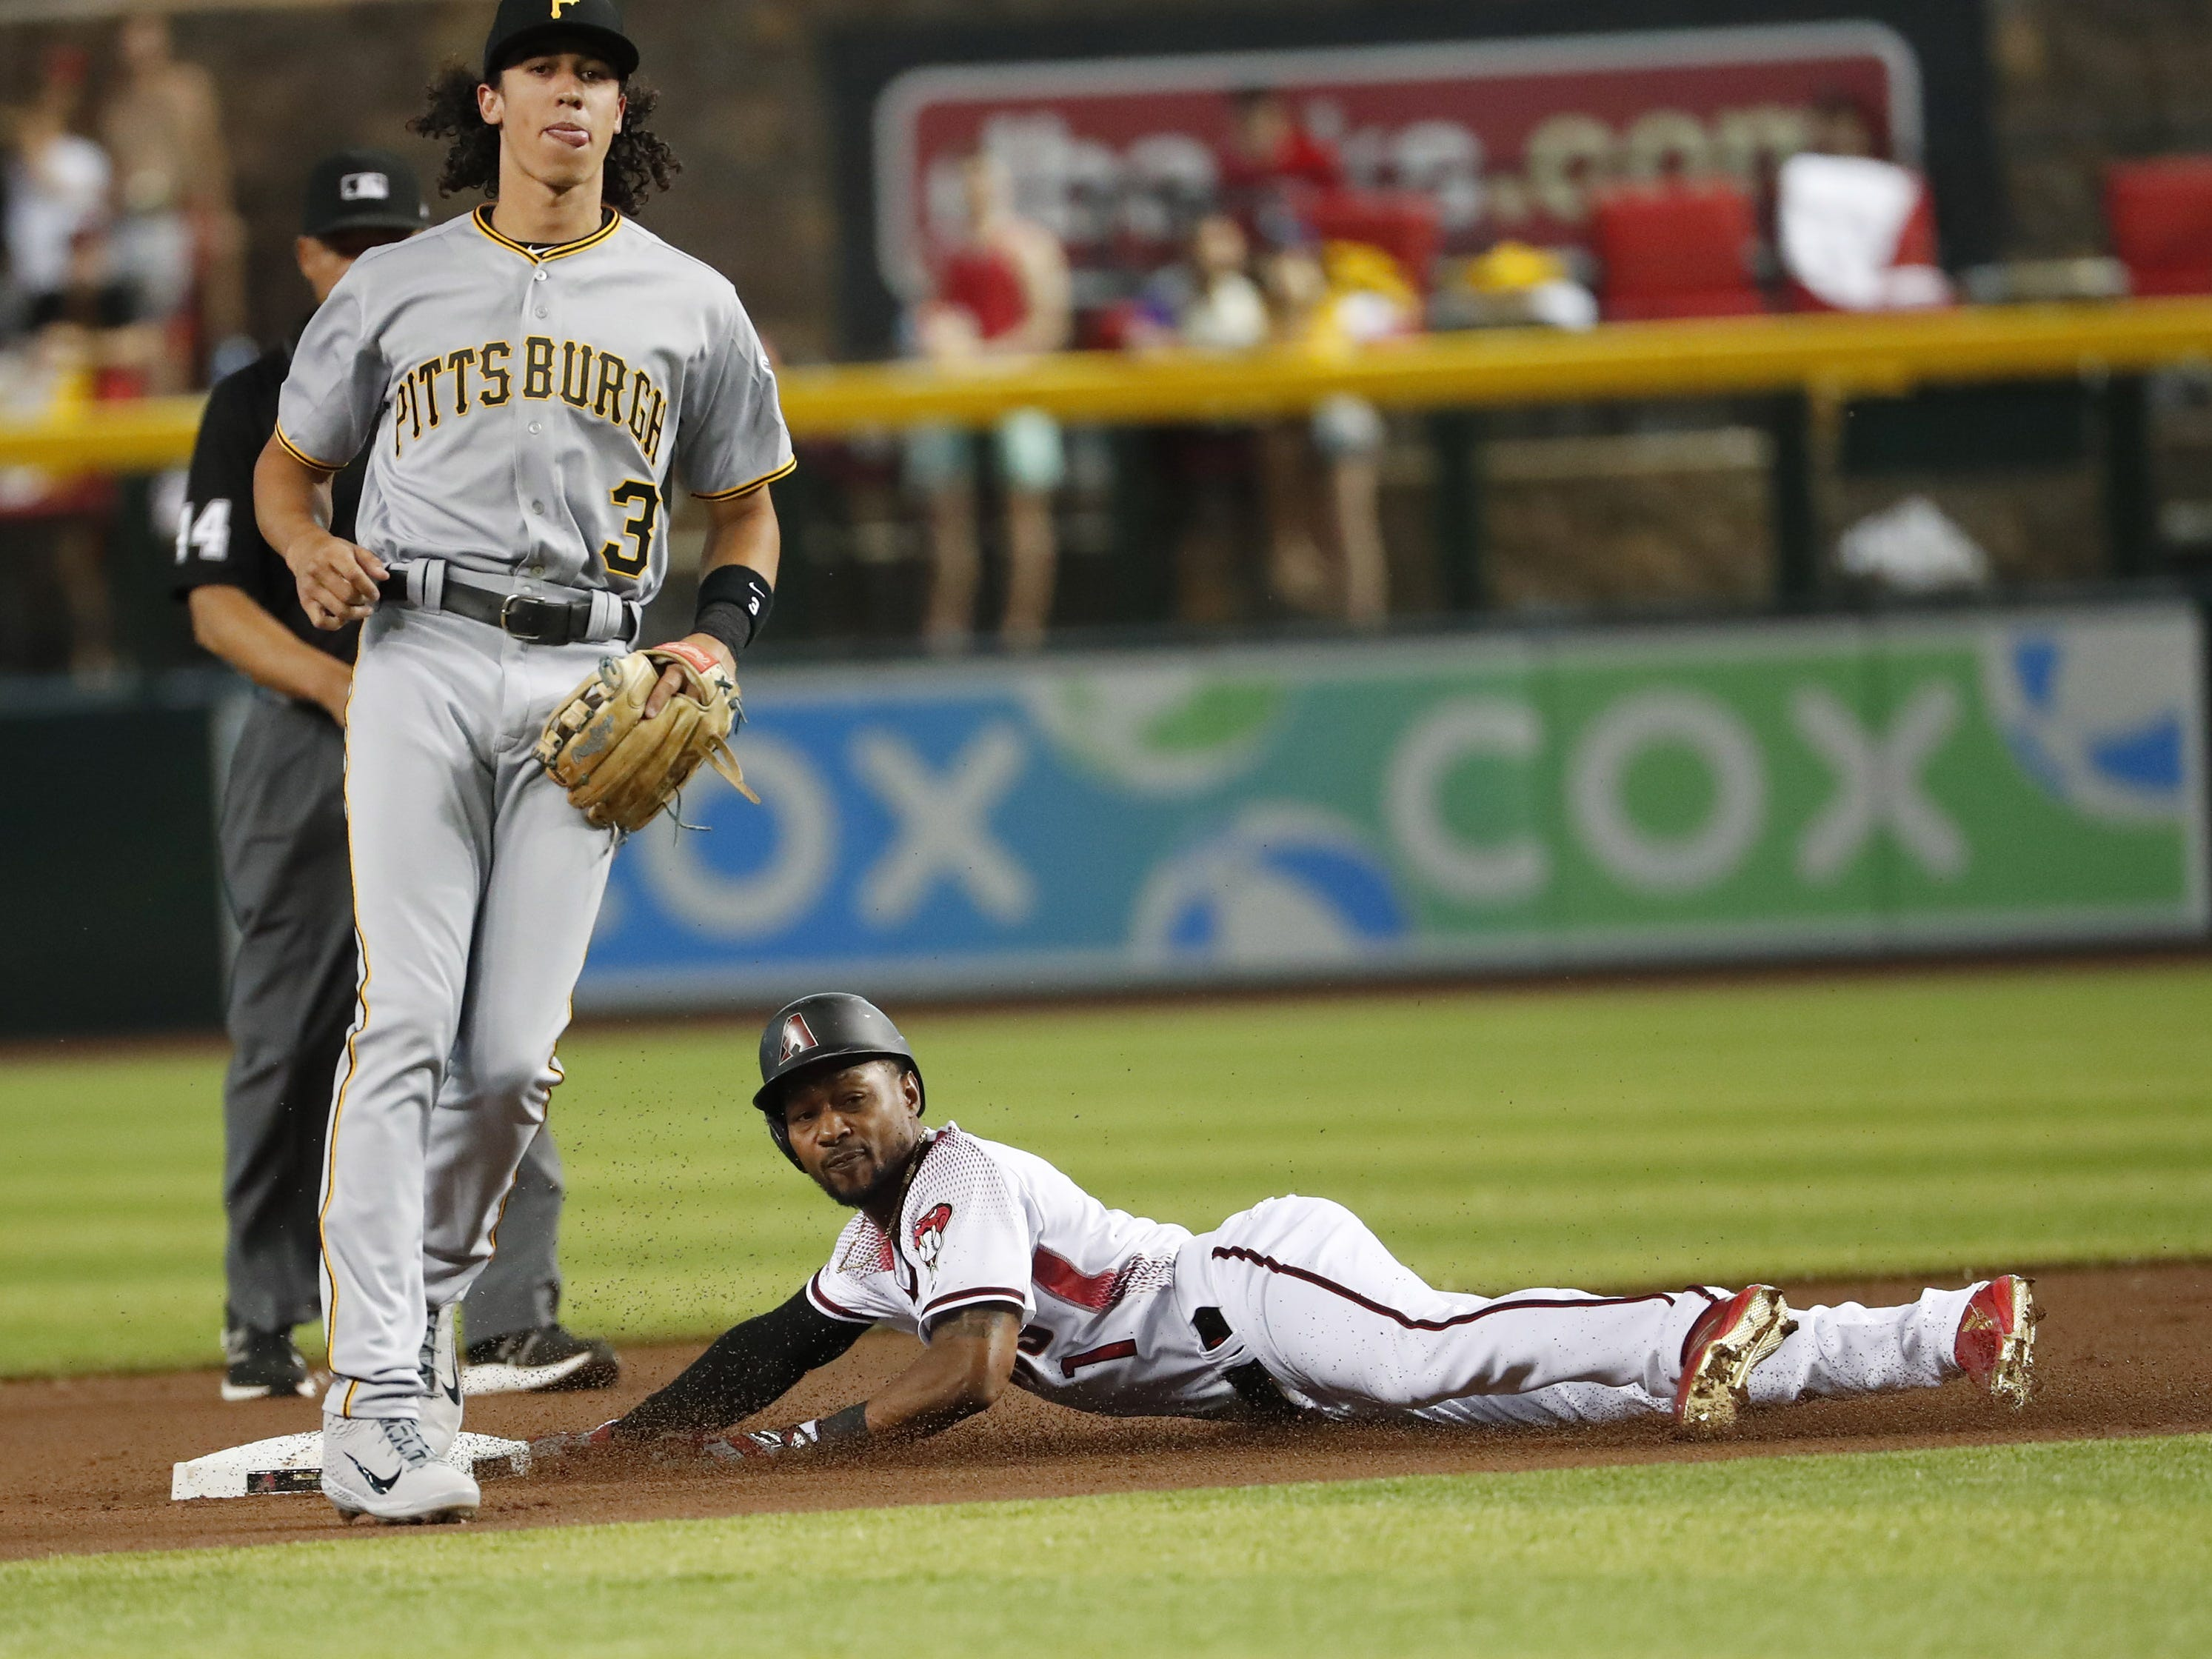 Arizona Diamondbacks center fielder Jarrod Dyson (1) steals second in front of Pittsburgh Pirates shortstop Cole Tucker (3) during the first inning. at Chase Field in Phoenix, Ariz. May 15, 2019.